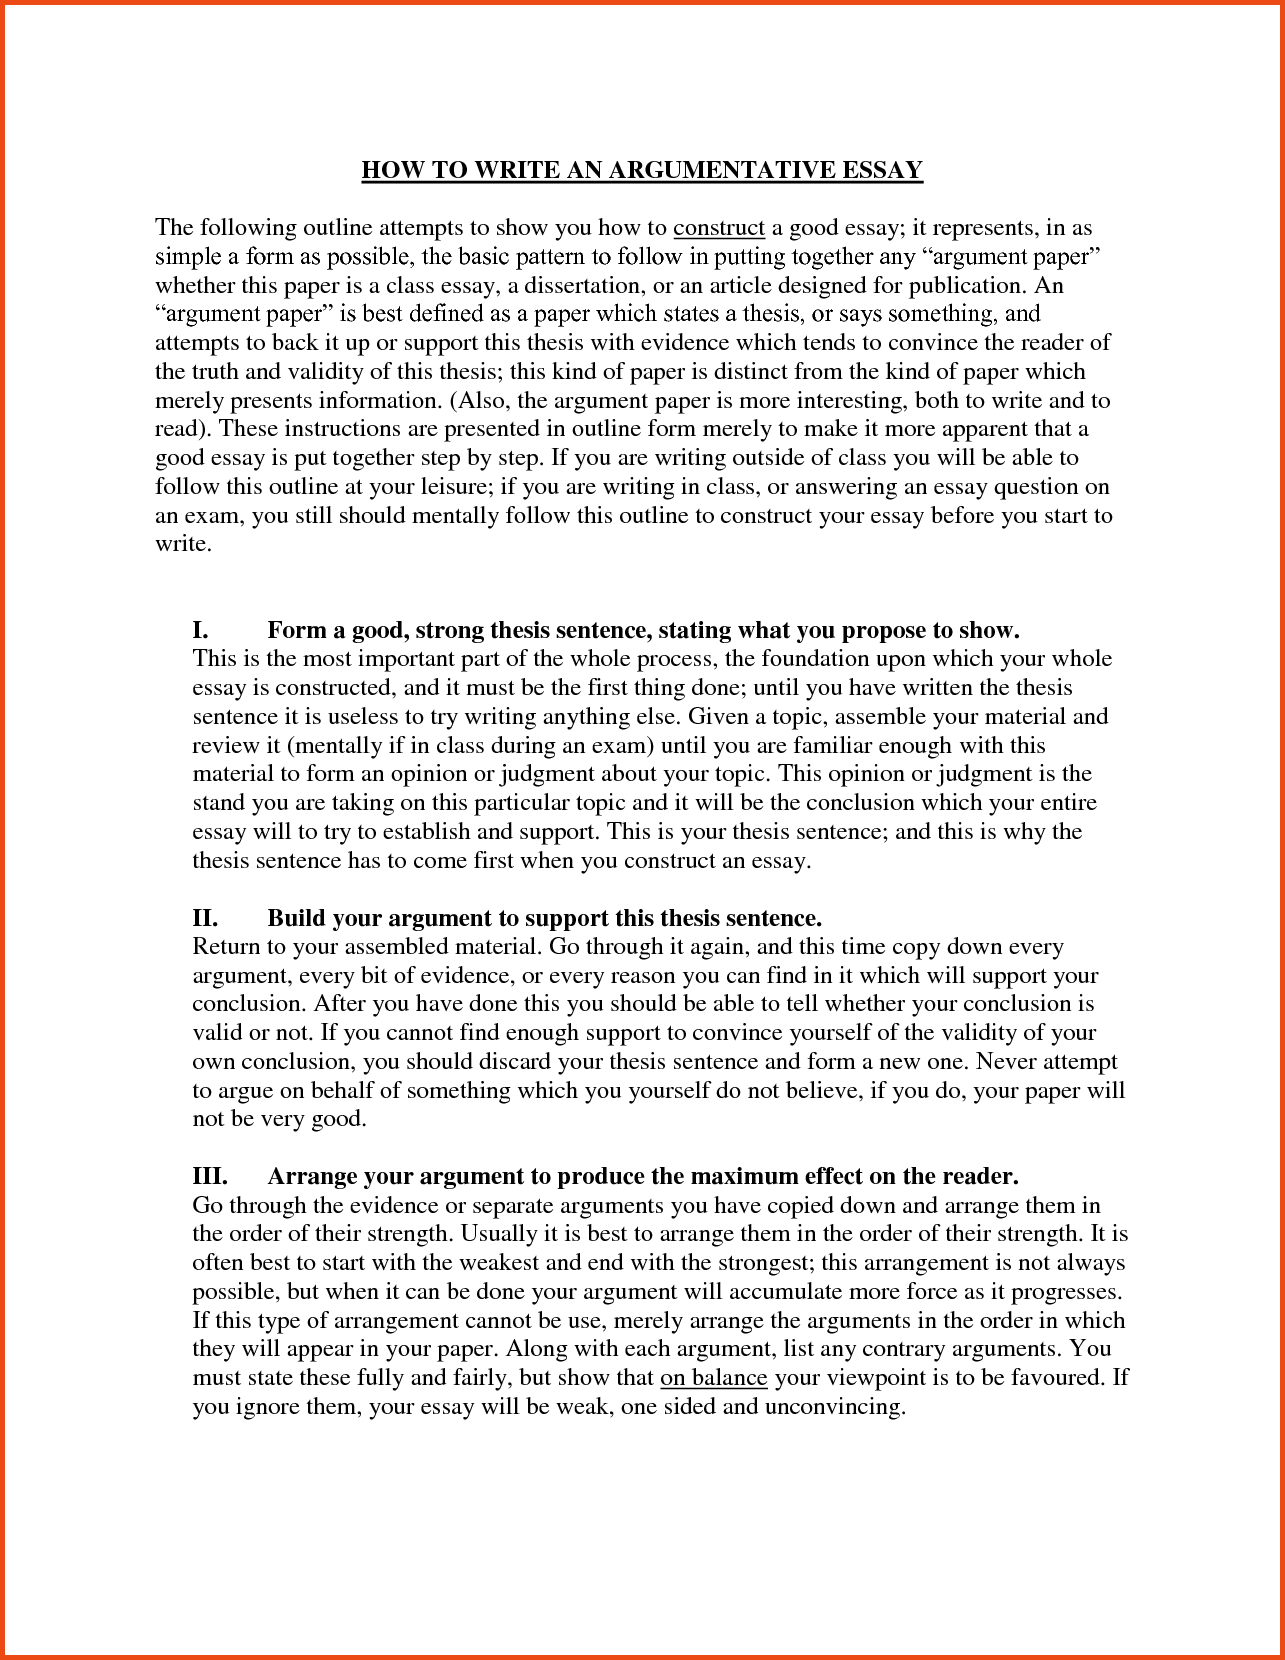 005 Essay Example How To Start An Brilliant Ideas Of Good Ways About Yourself Dissertation Nice Amazing Argumentative A Book With Definition Your Life Full